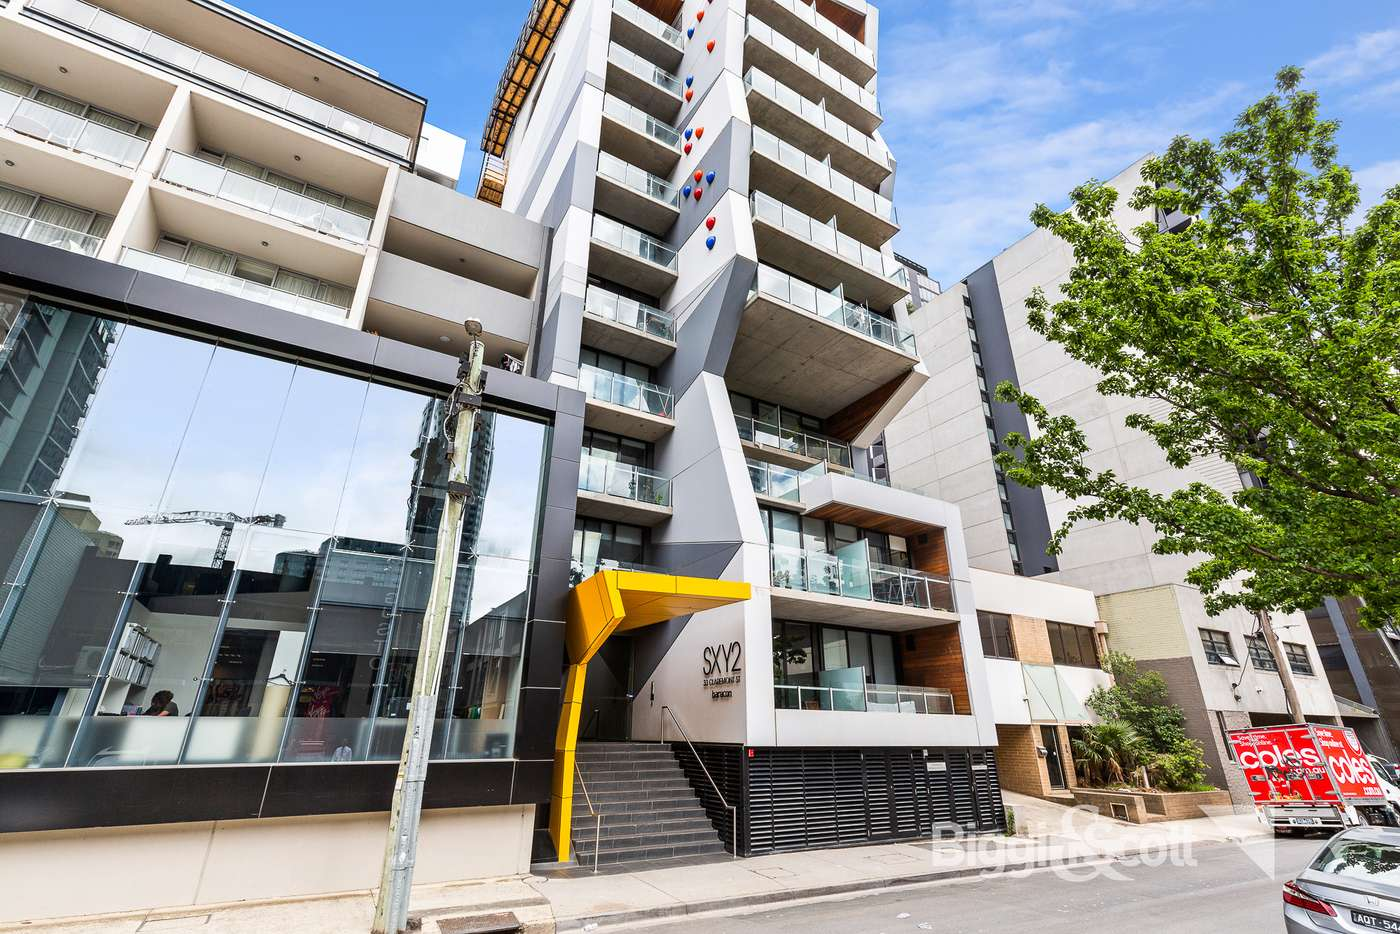 Main view of Homely apartment listing, 304/33 Claremont Street, South Yarra VIC 3141